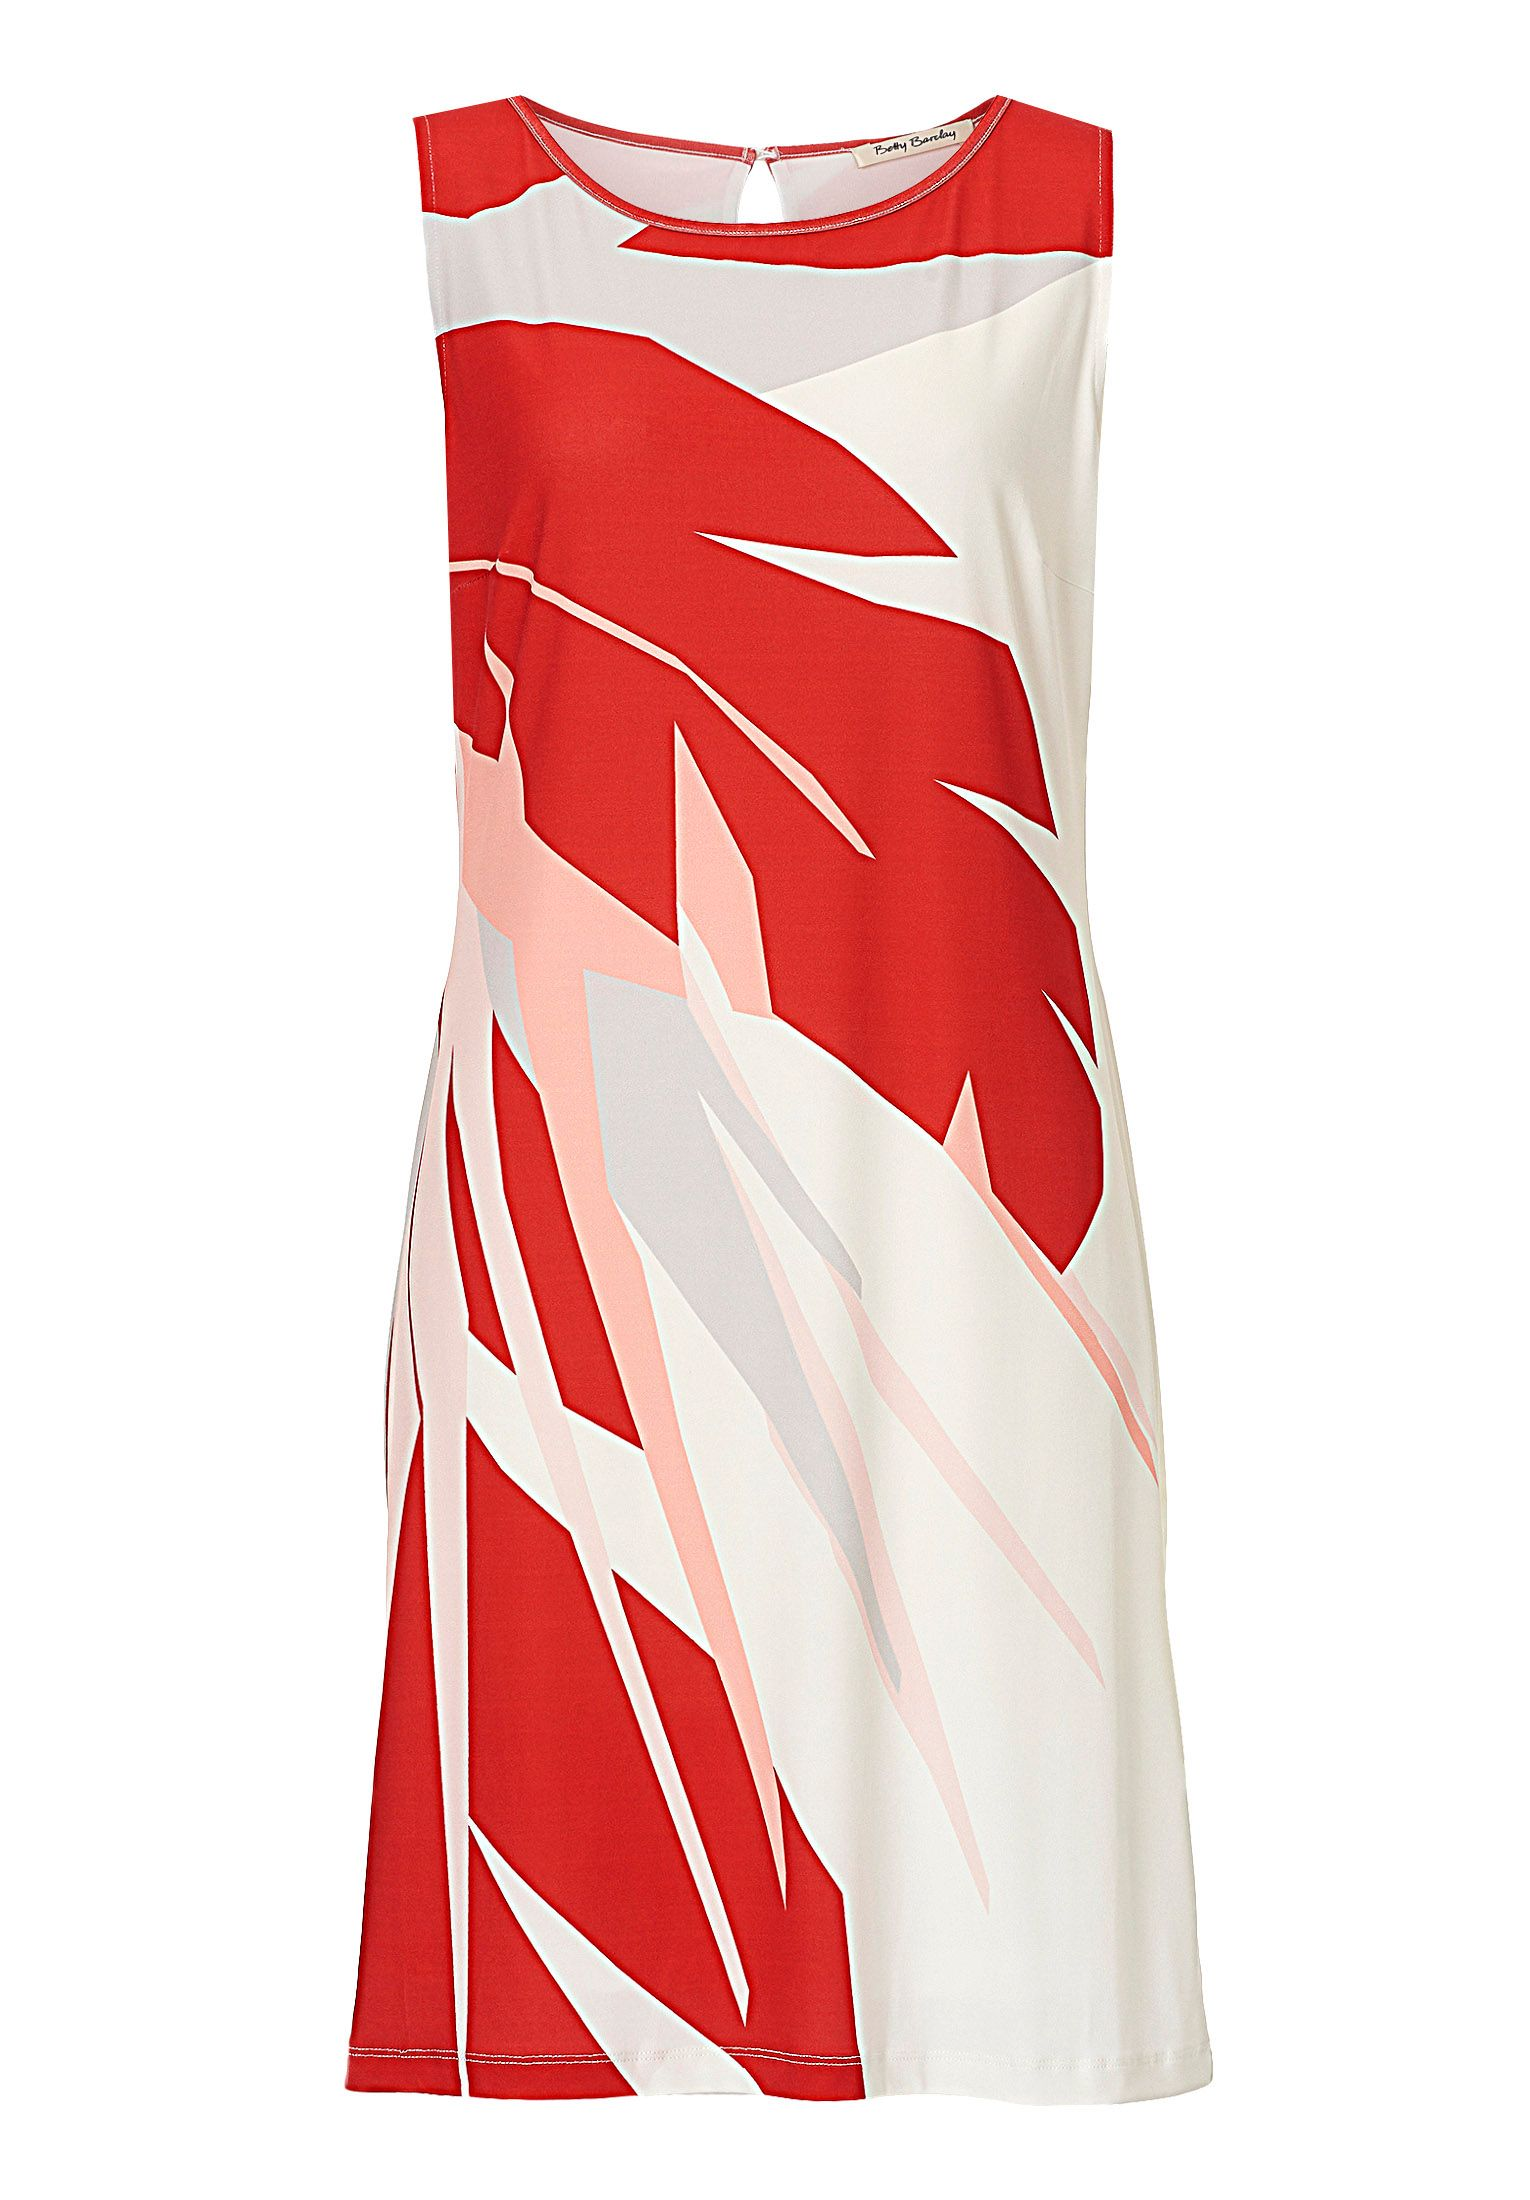 Betty Barclay Graphic print dress, Multi-Coloured